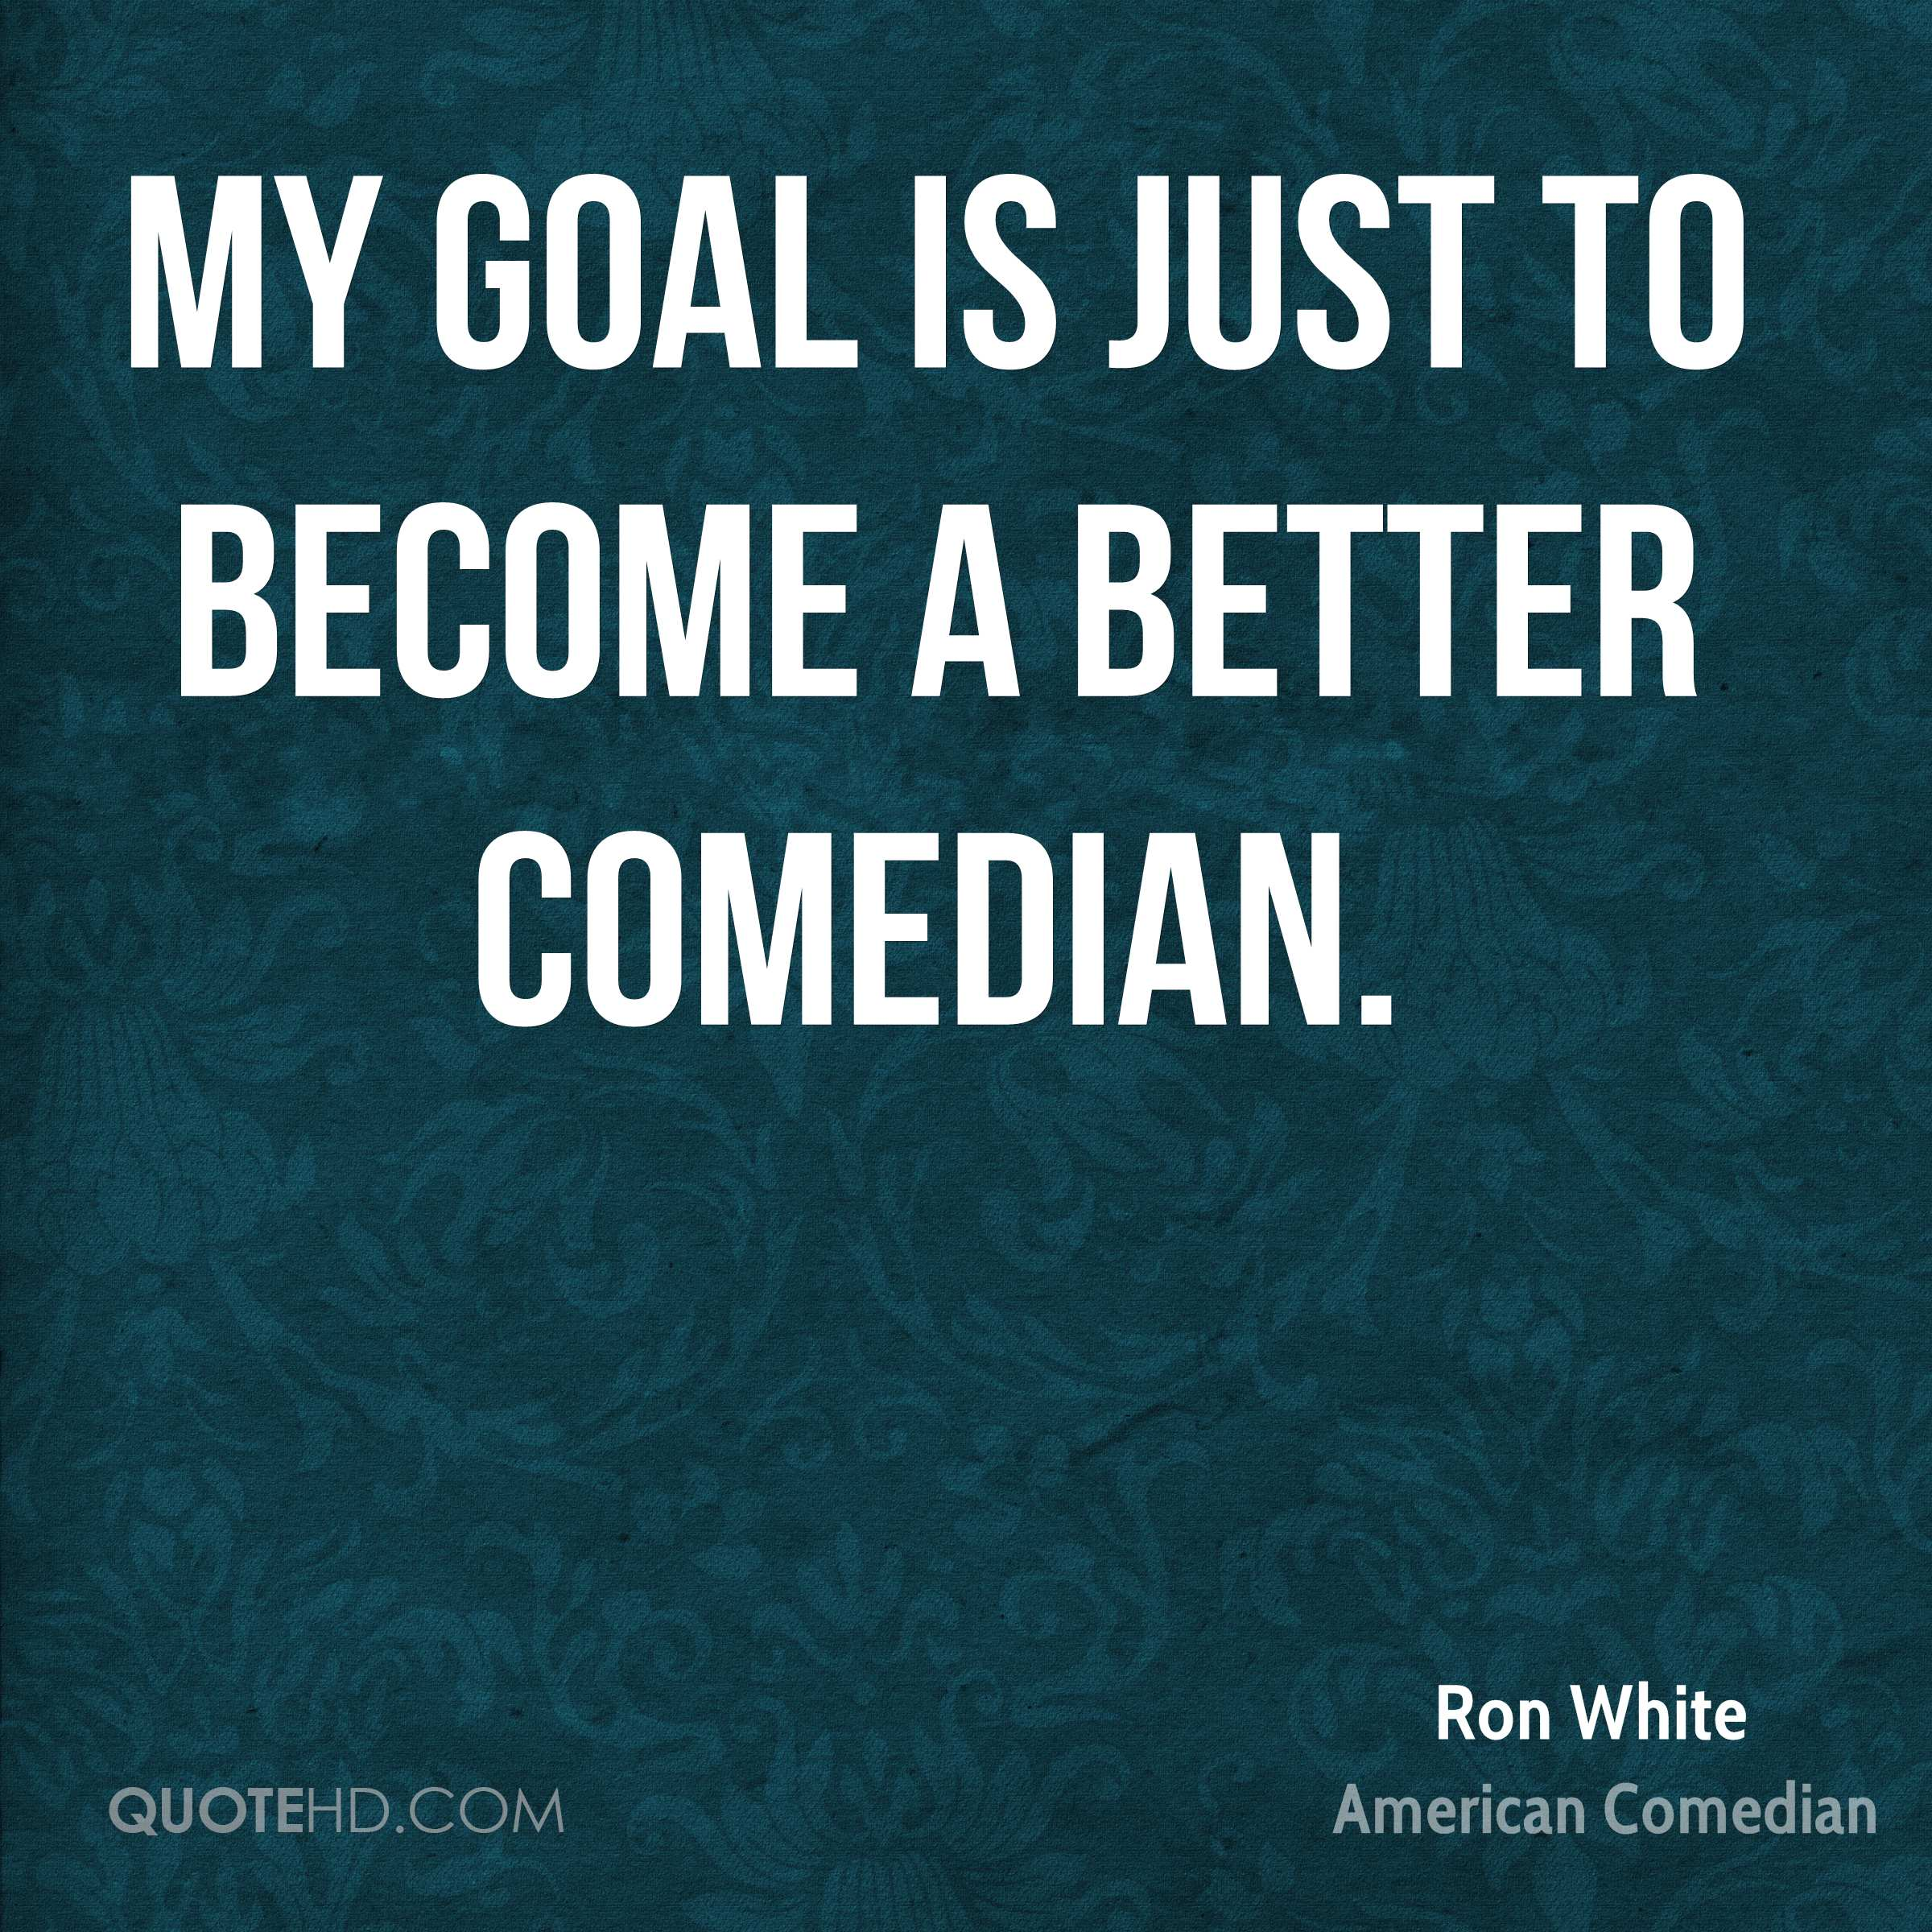 My goal is just to become a better comedian.